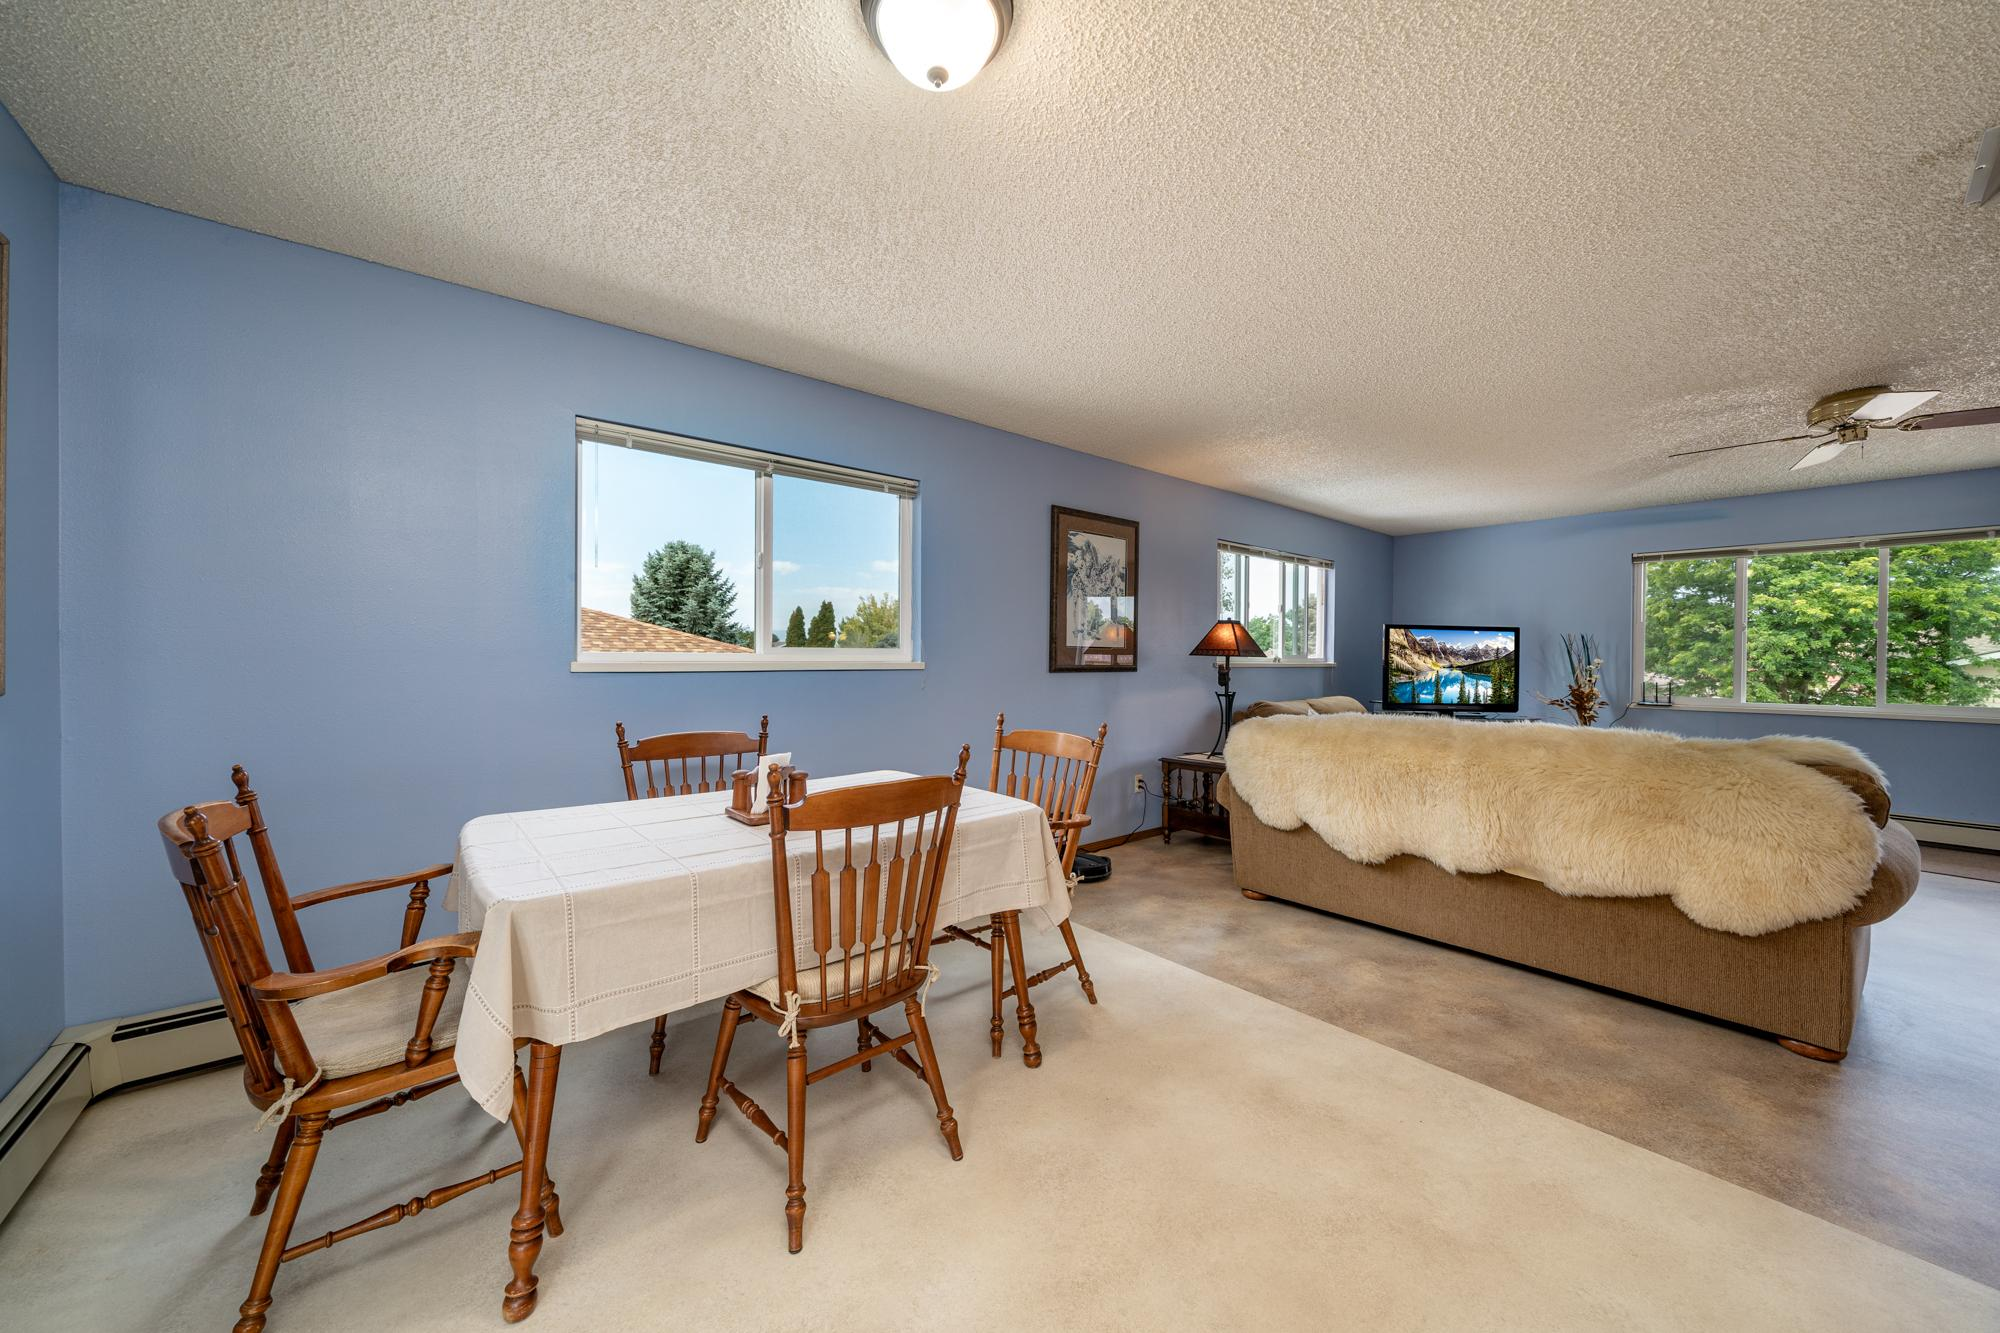 Dining Area with Window - 1311 Manchester Dr Montrose, CO 81401 - Atha Team Realty Agents